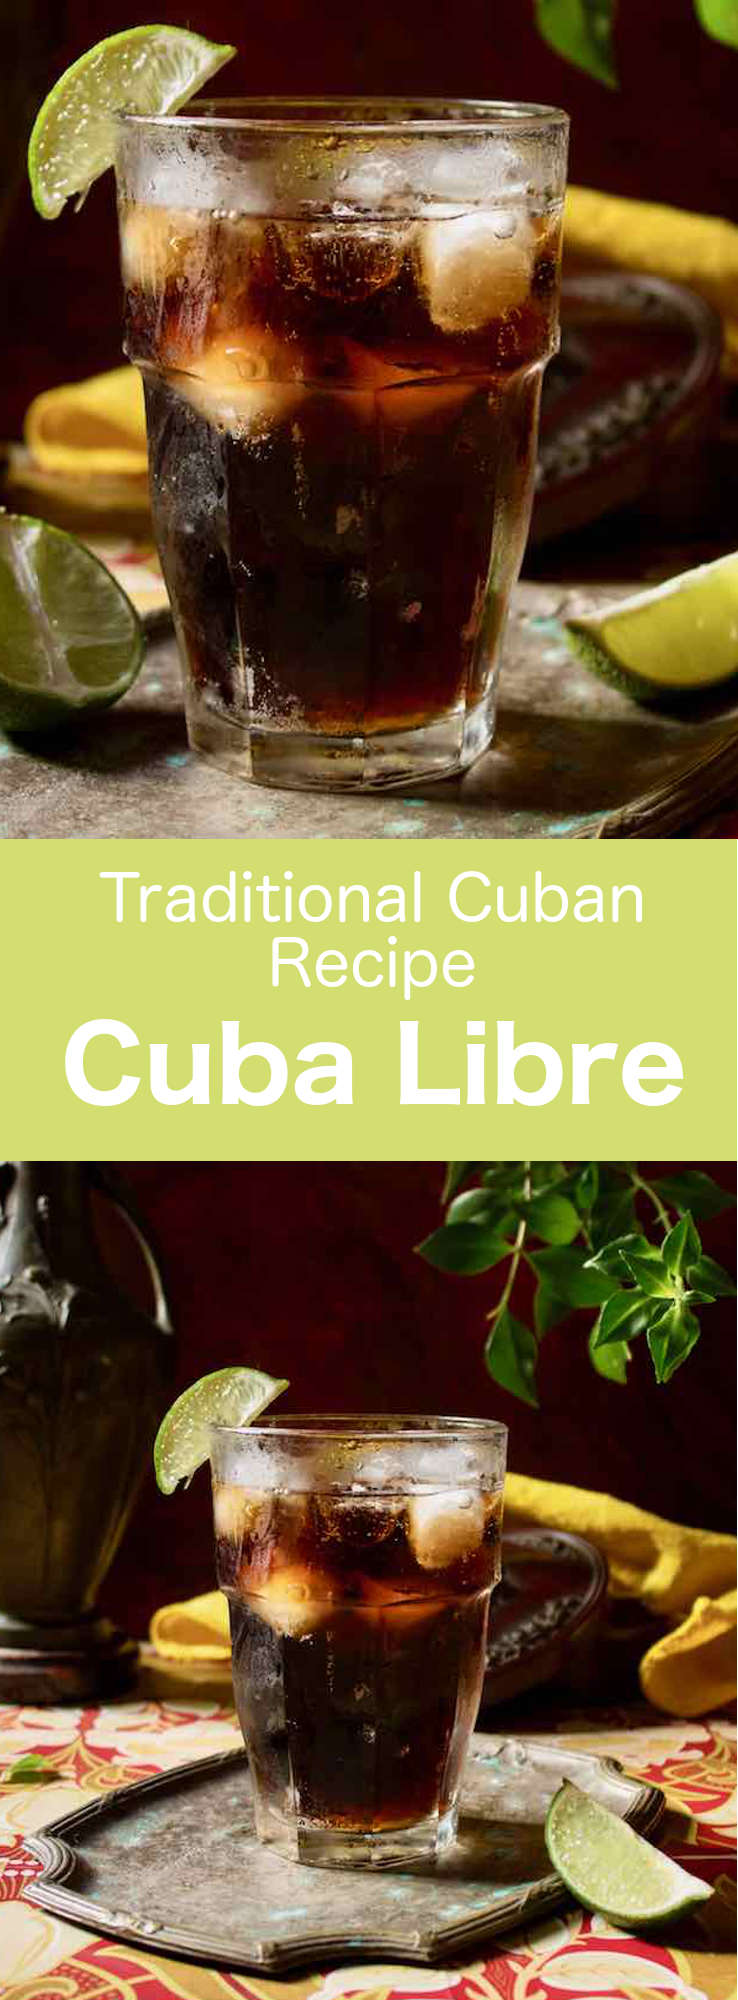 Cuba Libre is an easy-to-make traditional Cuban cocktail that is prepared with Coke, white rum, and lime, and that is served on the rocks. #Cuba #Cocktail #CubanRecipe #CubanDrink #Caribbean #CaribbeanDrink #WorldCuisine #196flavors